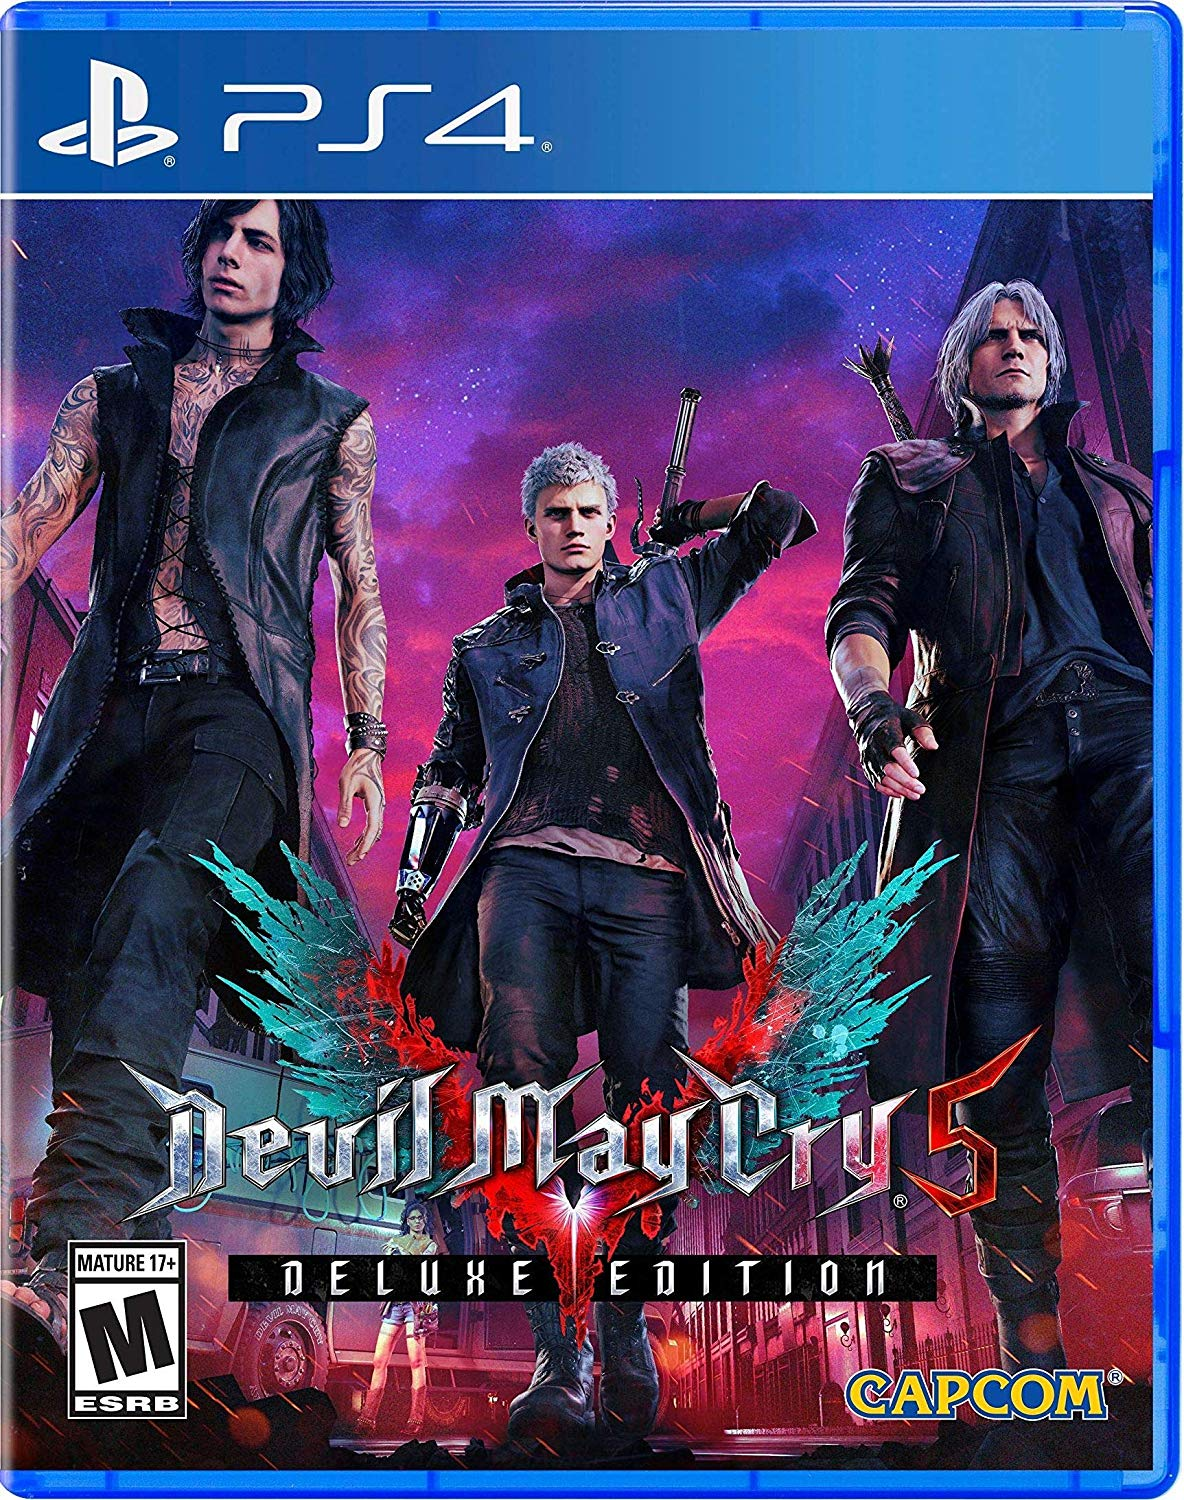 PS4 DMC5 Devil May Cry 5 DELUXE Edition